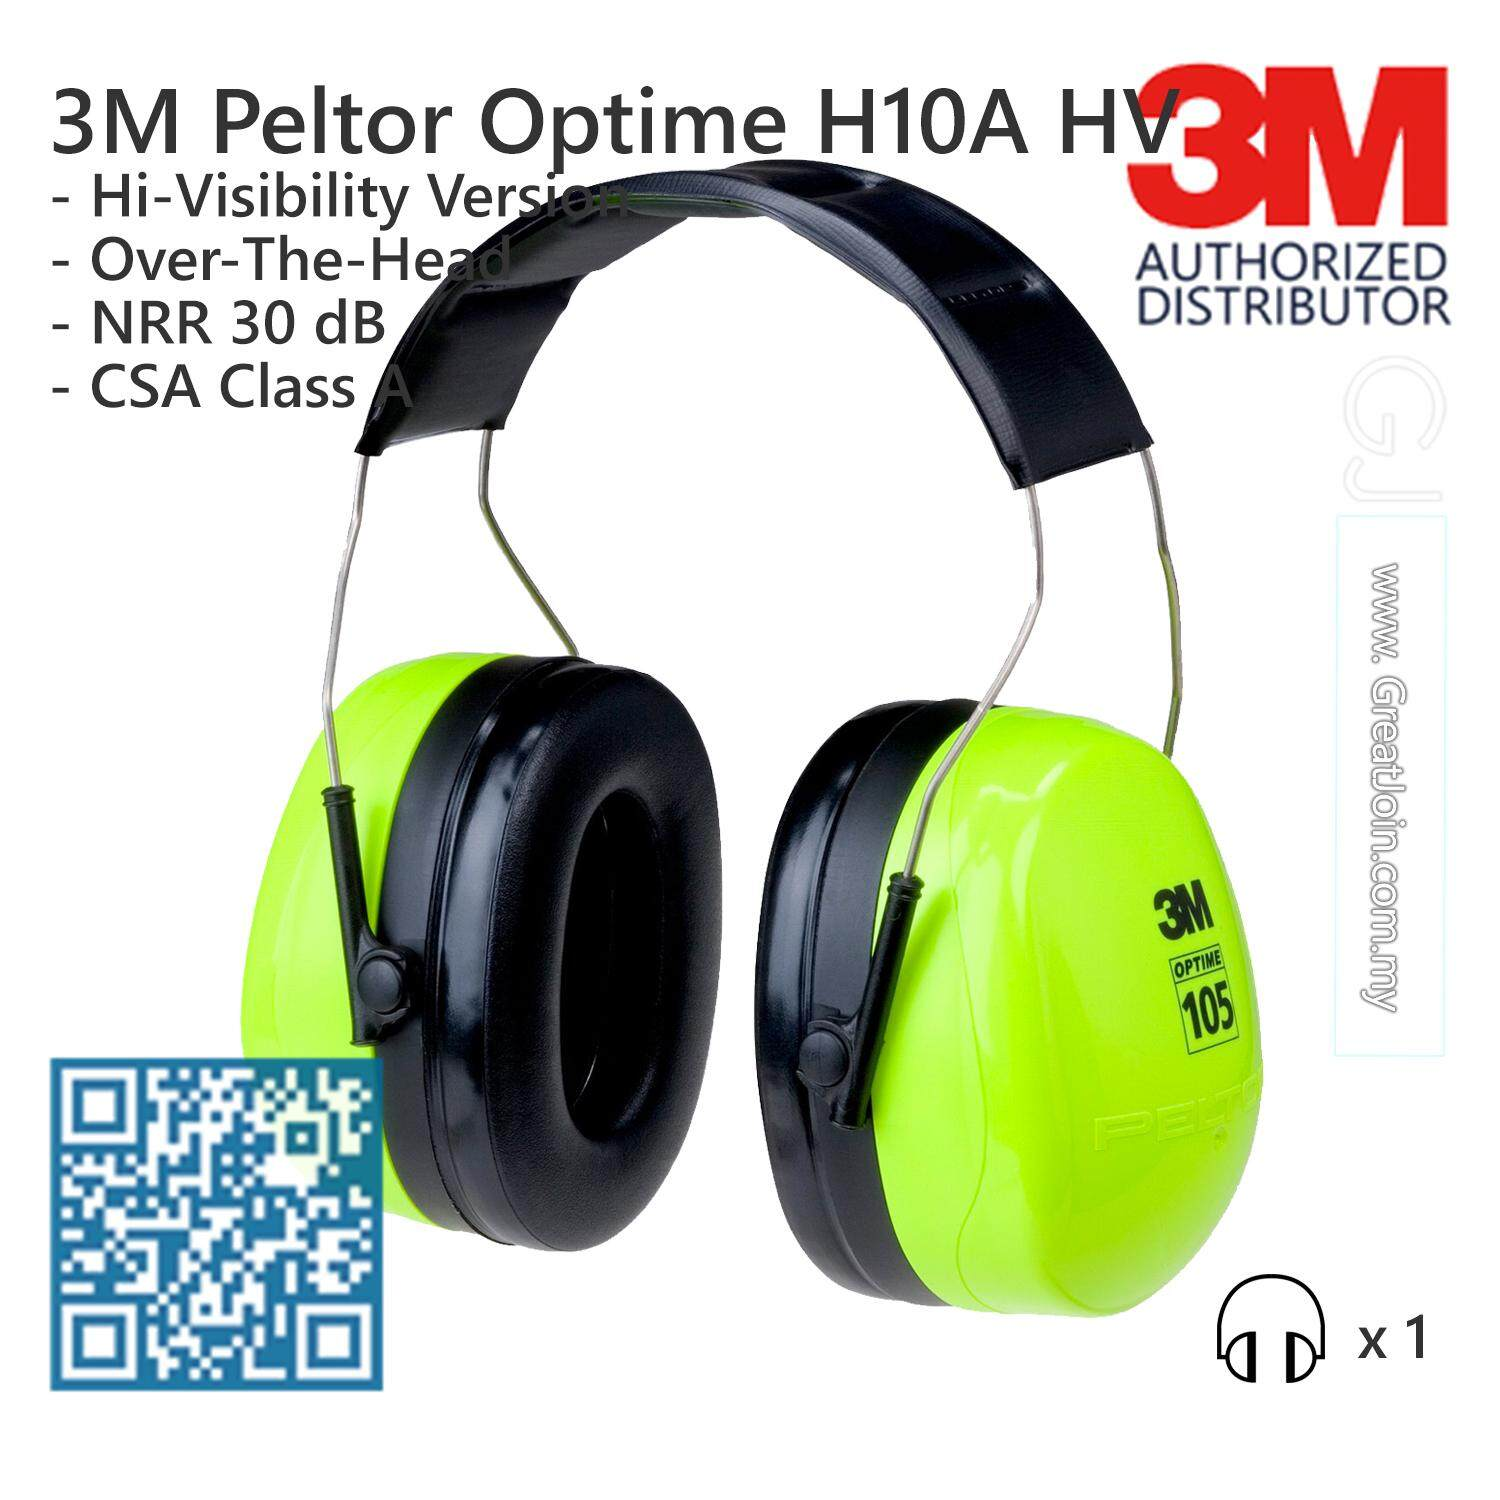 Home Ear Protection Buy At Best Price In Ems Adjustable Headband Green Gold For Baby Earmuff 3m H10a Hv Peltor Optime 105 Series Over The Head Safety Hi Visibility